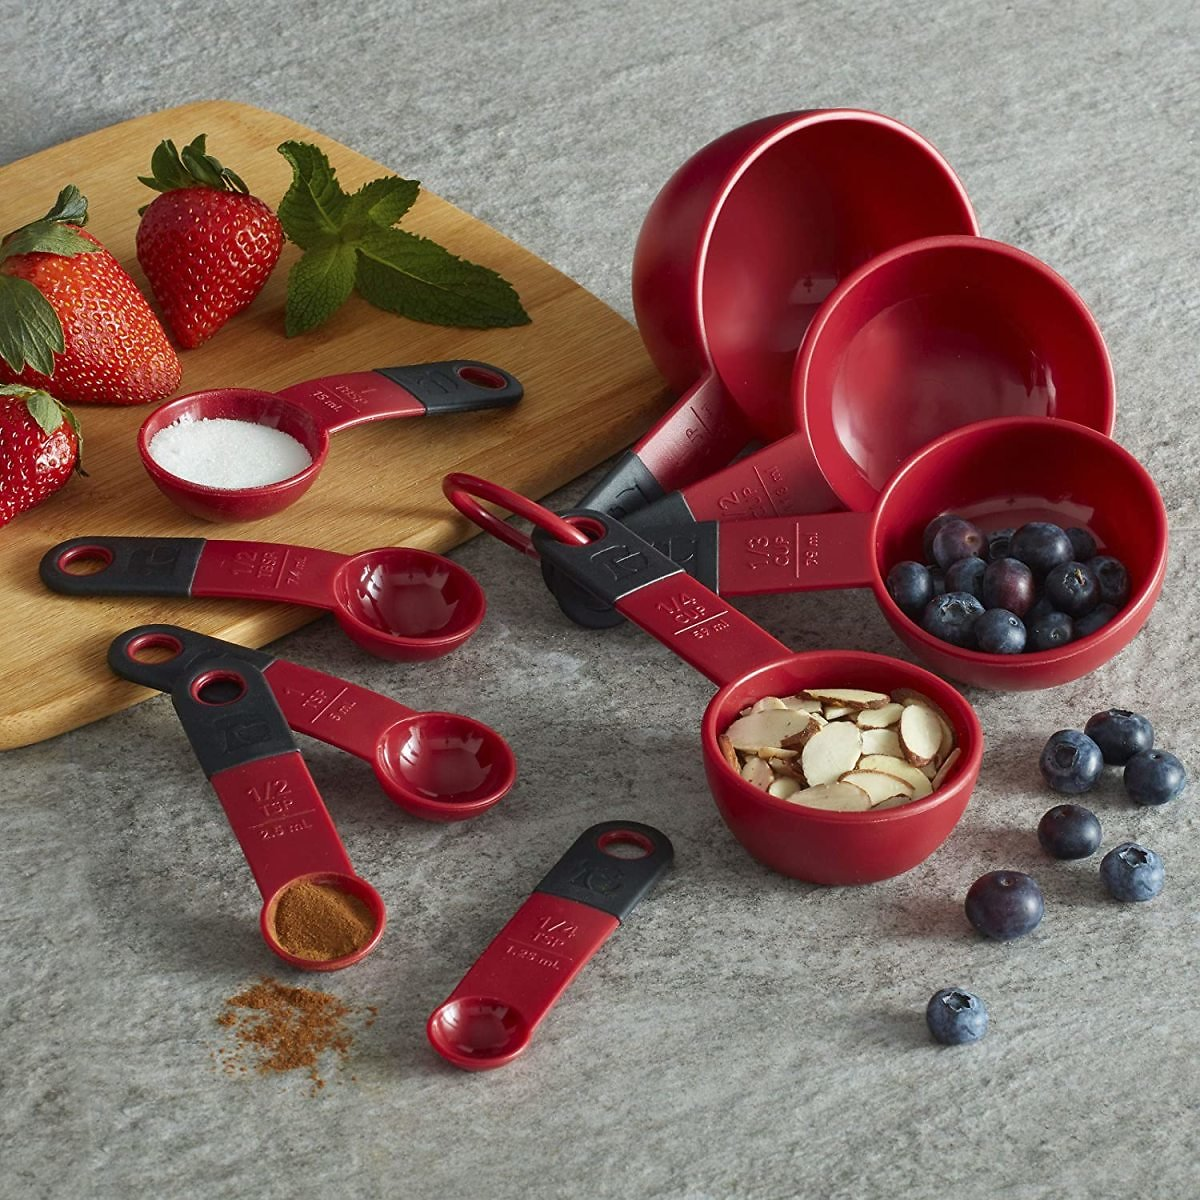 KitchenAid Classic Measuring Cups And Spoons Set, Set of 9, Red/Black